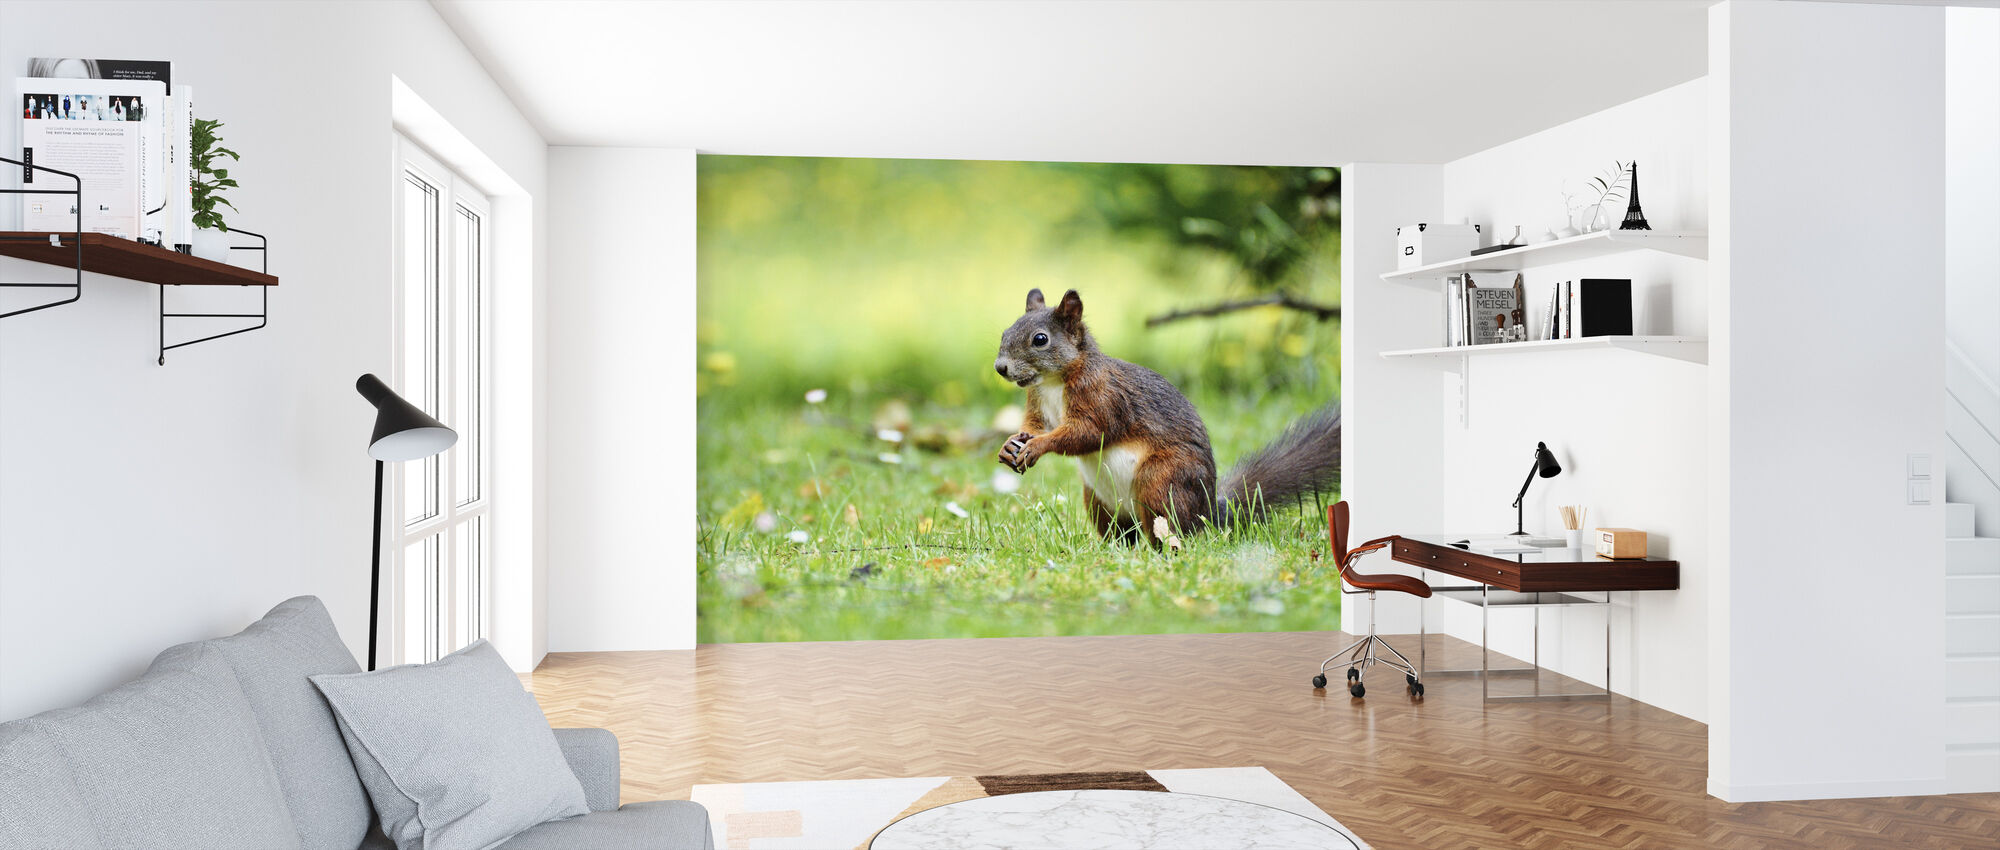 Squirrel Census - Wallpaper - Office